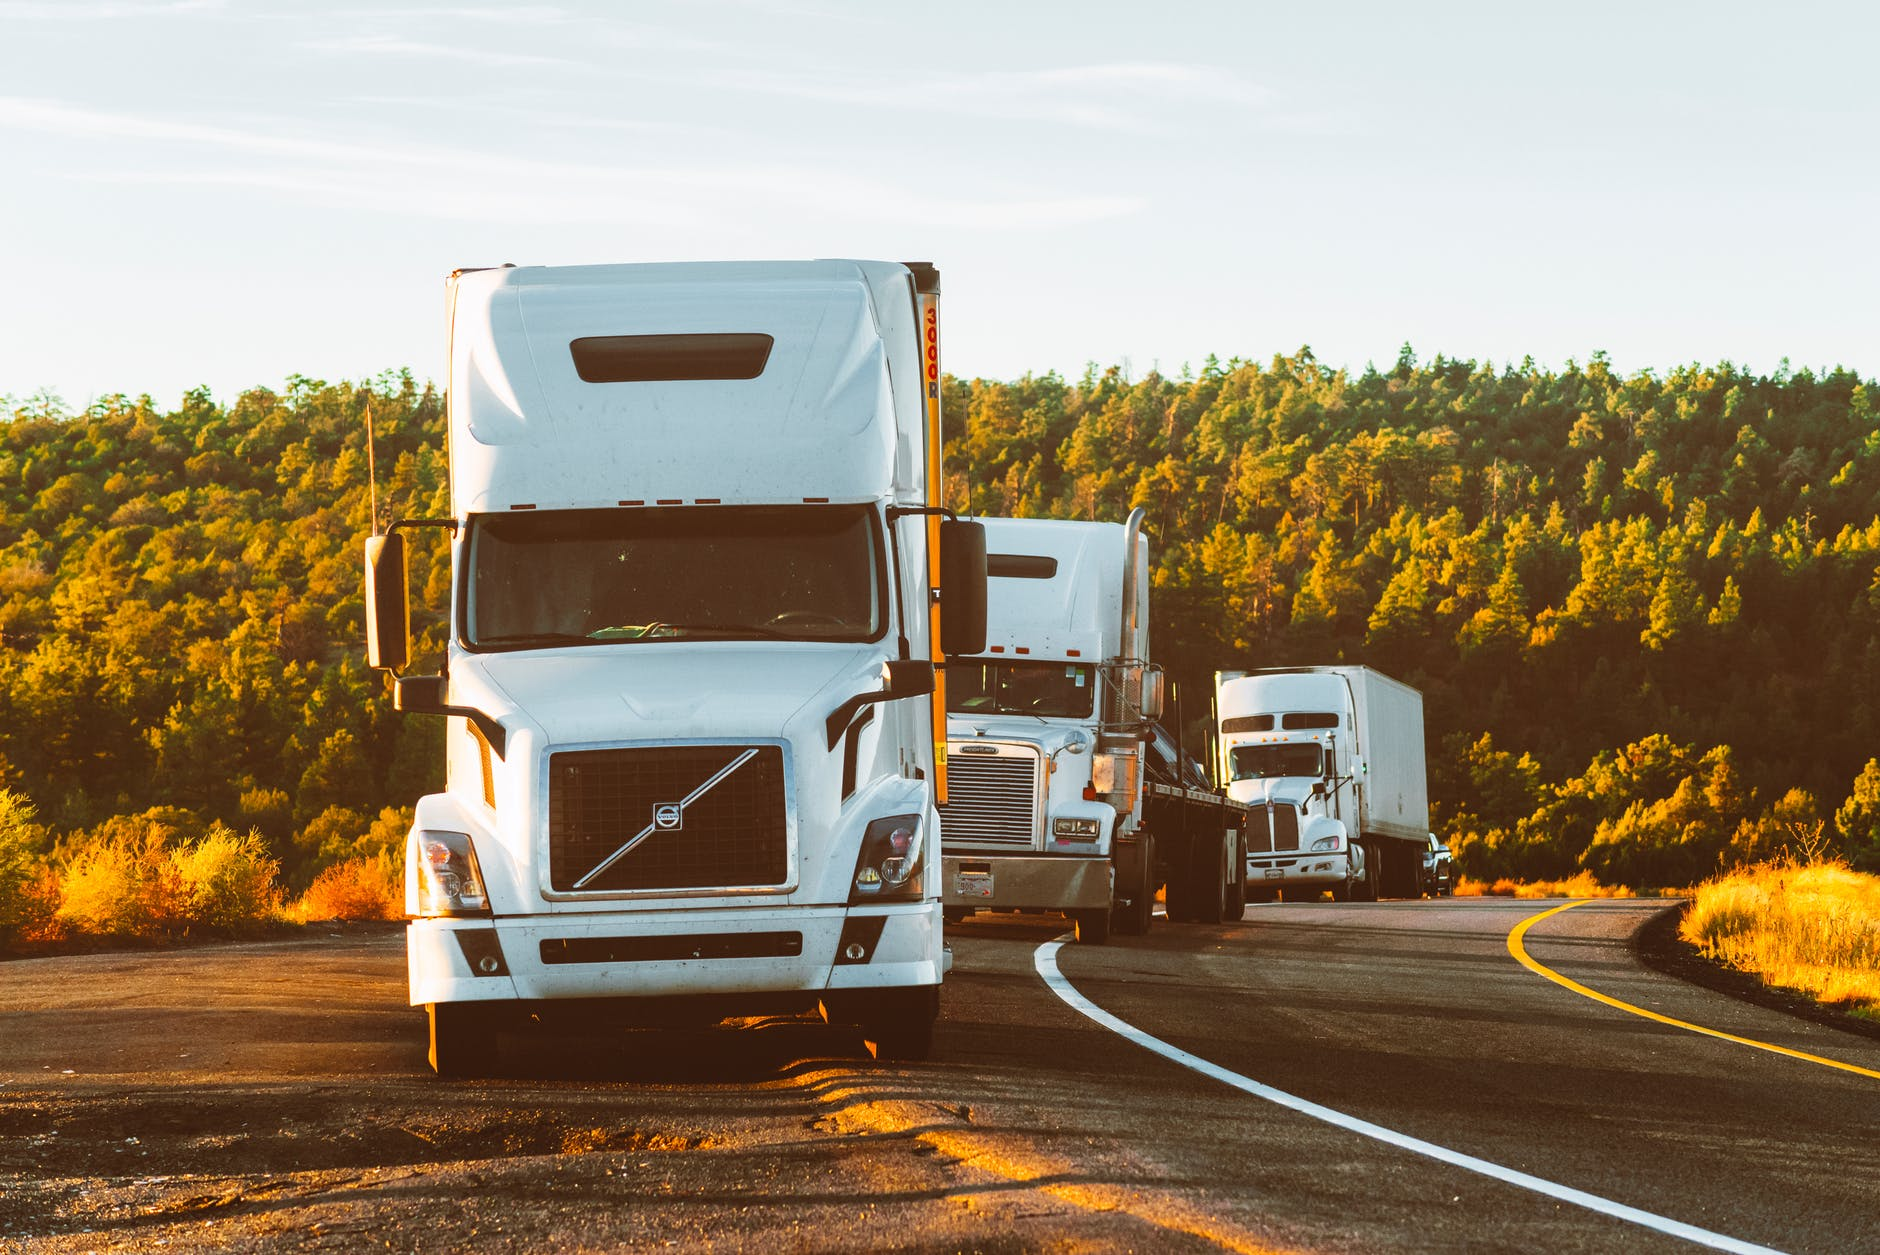 Truckload vs. LTL Freight: What's the Difference? What Are the Advantages of Freight Forwarders in International Trade Overloading a Truck